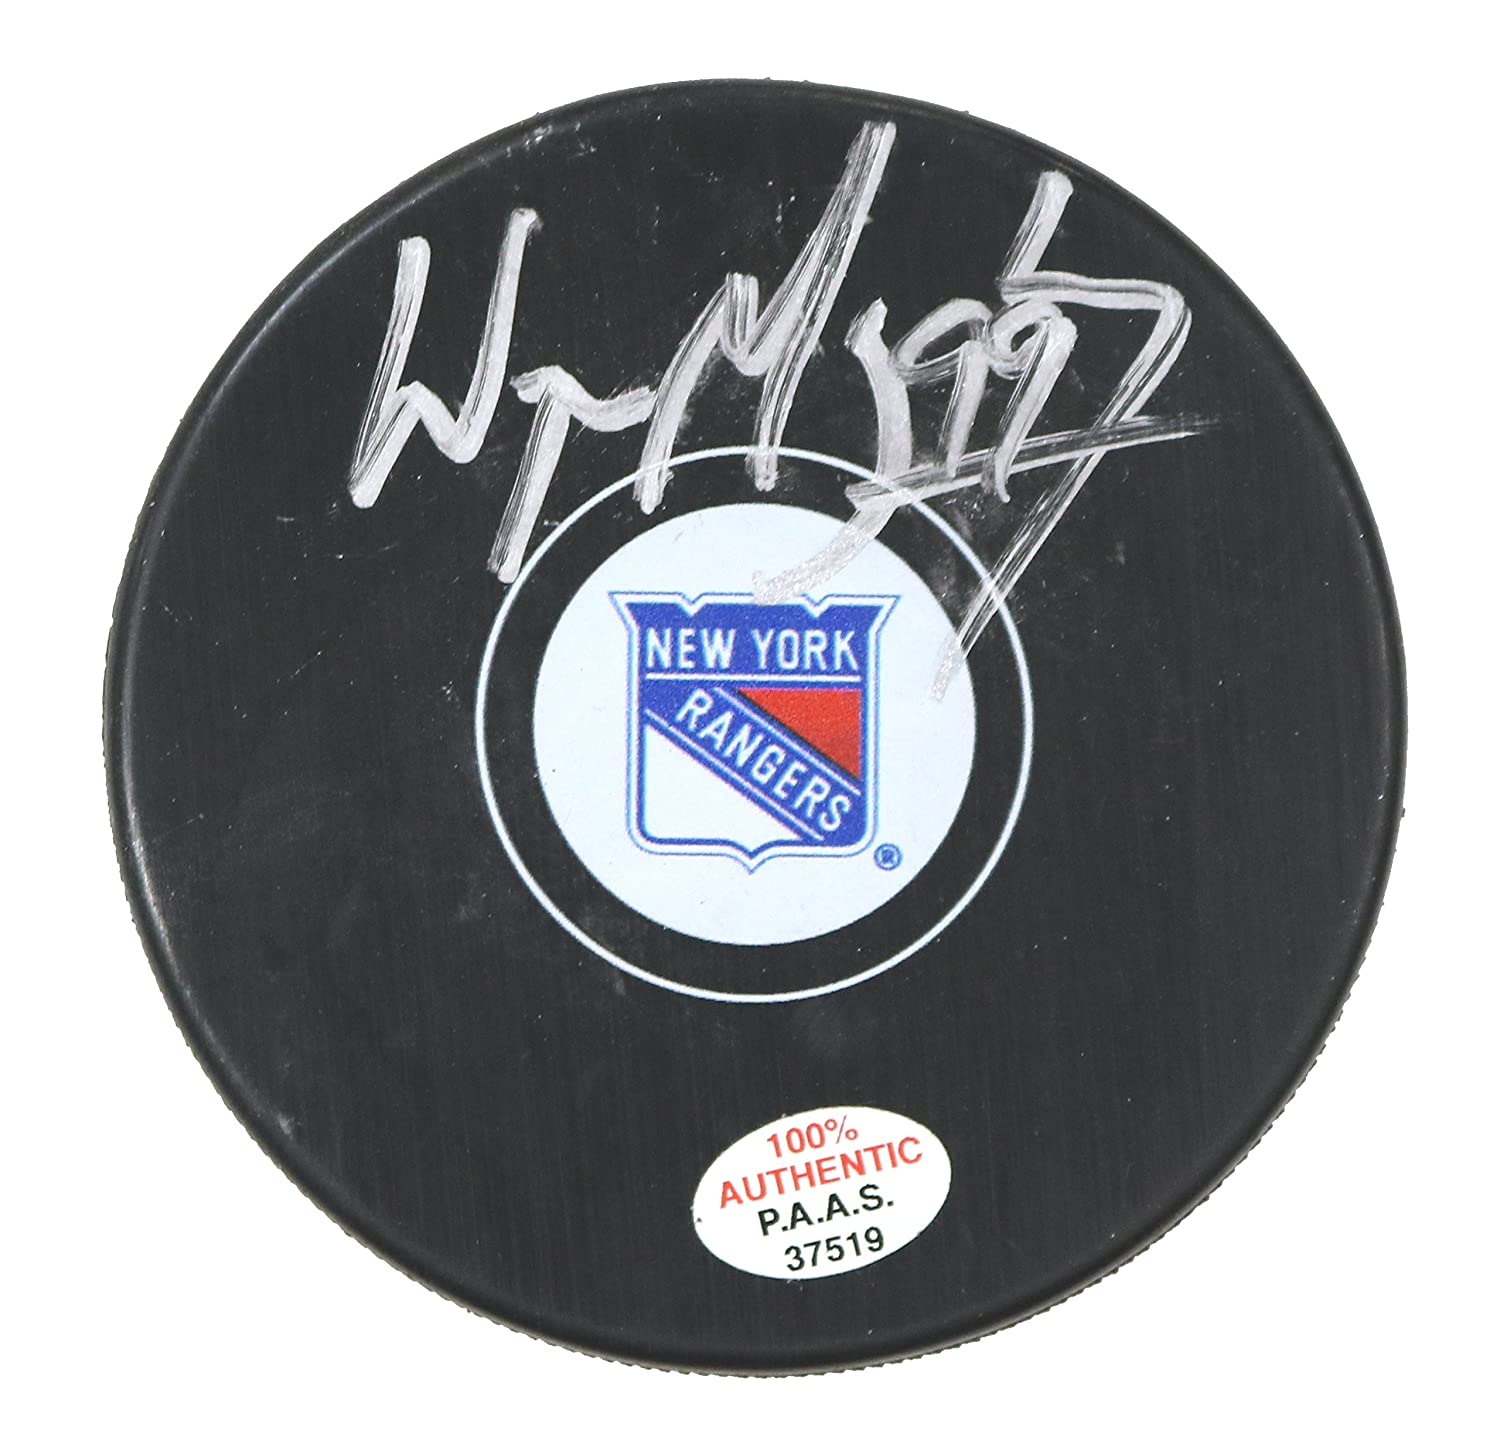 ede01564c87 Wayne Gretzky New York Rangers Signed Autographed Rangers Logo NHL Hockey  Puck PAAS COA at Amazon s Sports Collectibles Store